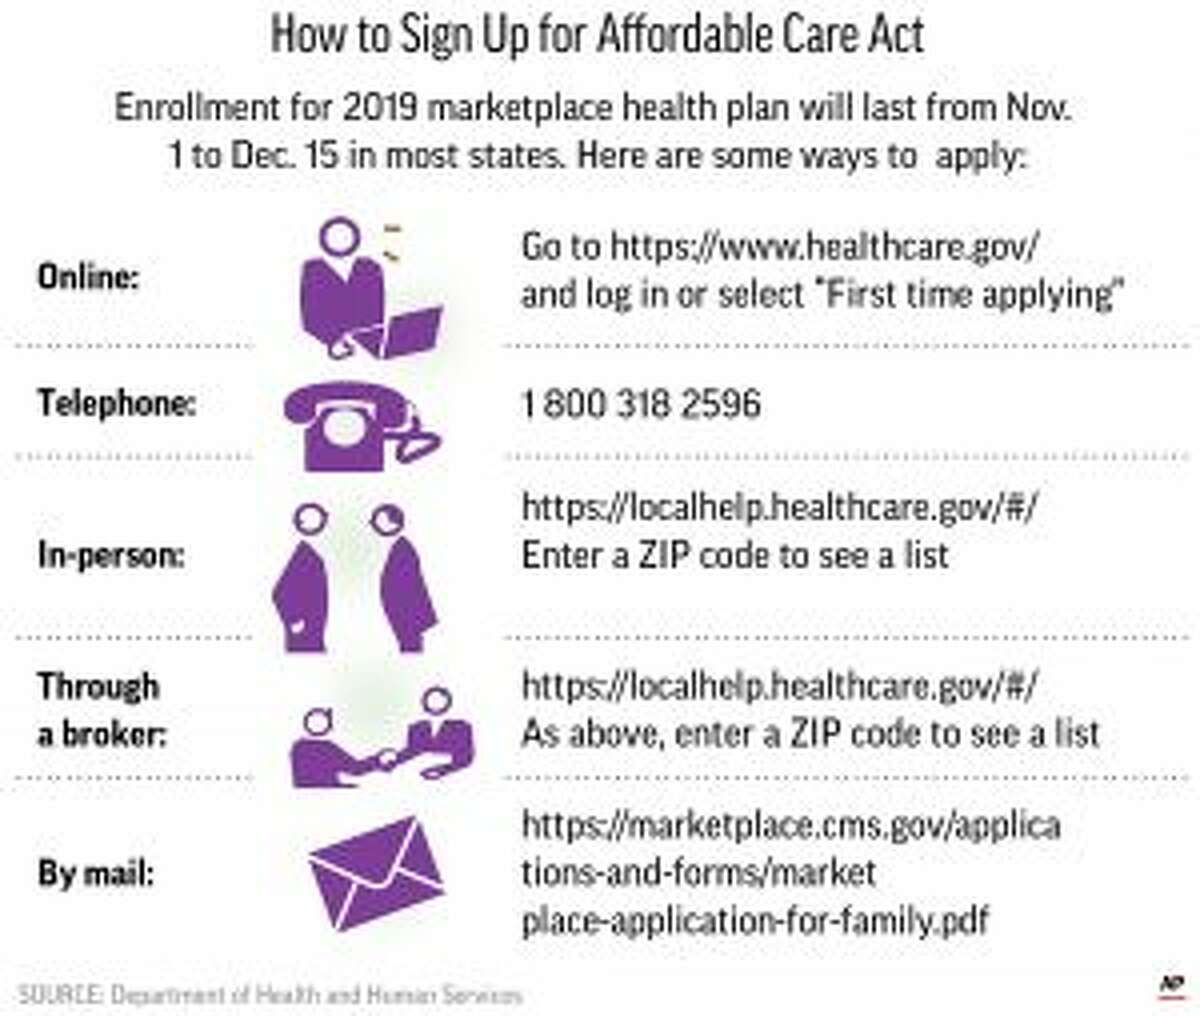 Sign up for health insurance under the Affordable Care Act began Nov. 1 and ends Dec. 15.